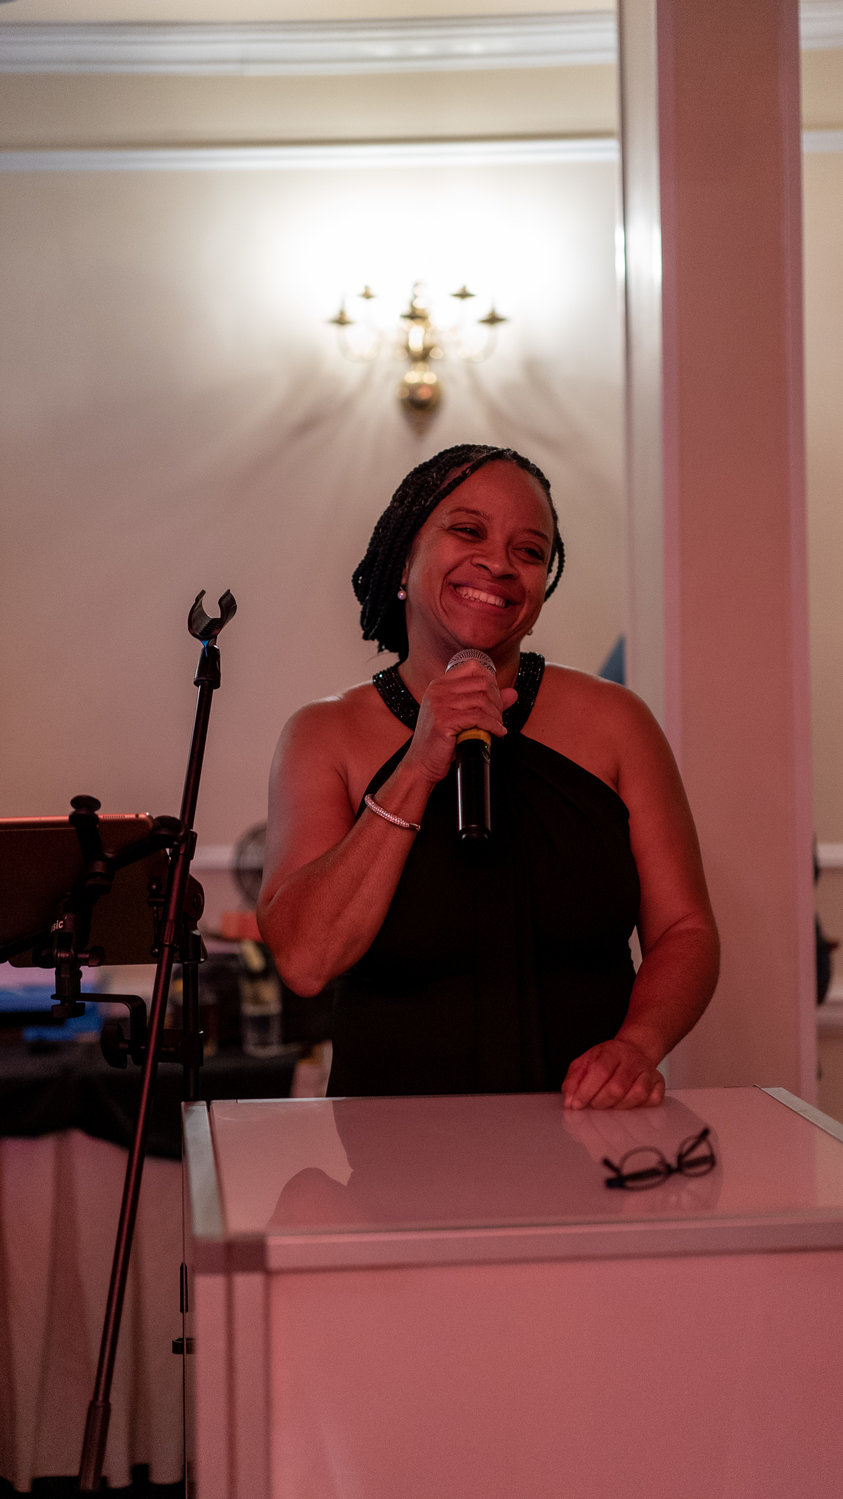 Dr. Zodelia Williams, founder and executive director of 3D's Aftercare Inc., spoke to a Coral House ballroom filled with people at 3D's Unsung Warriors Gala on Oct. 24.